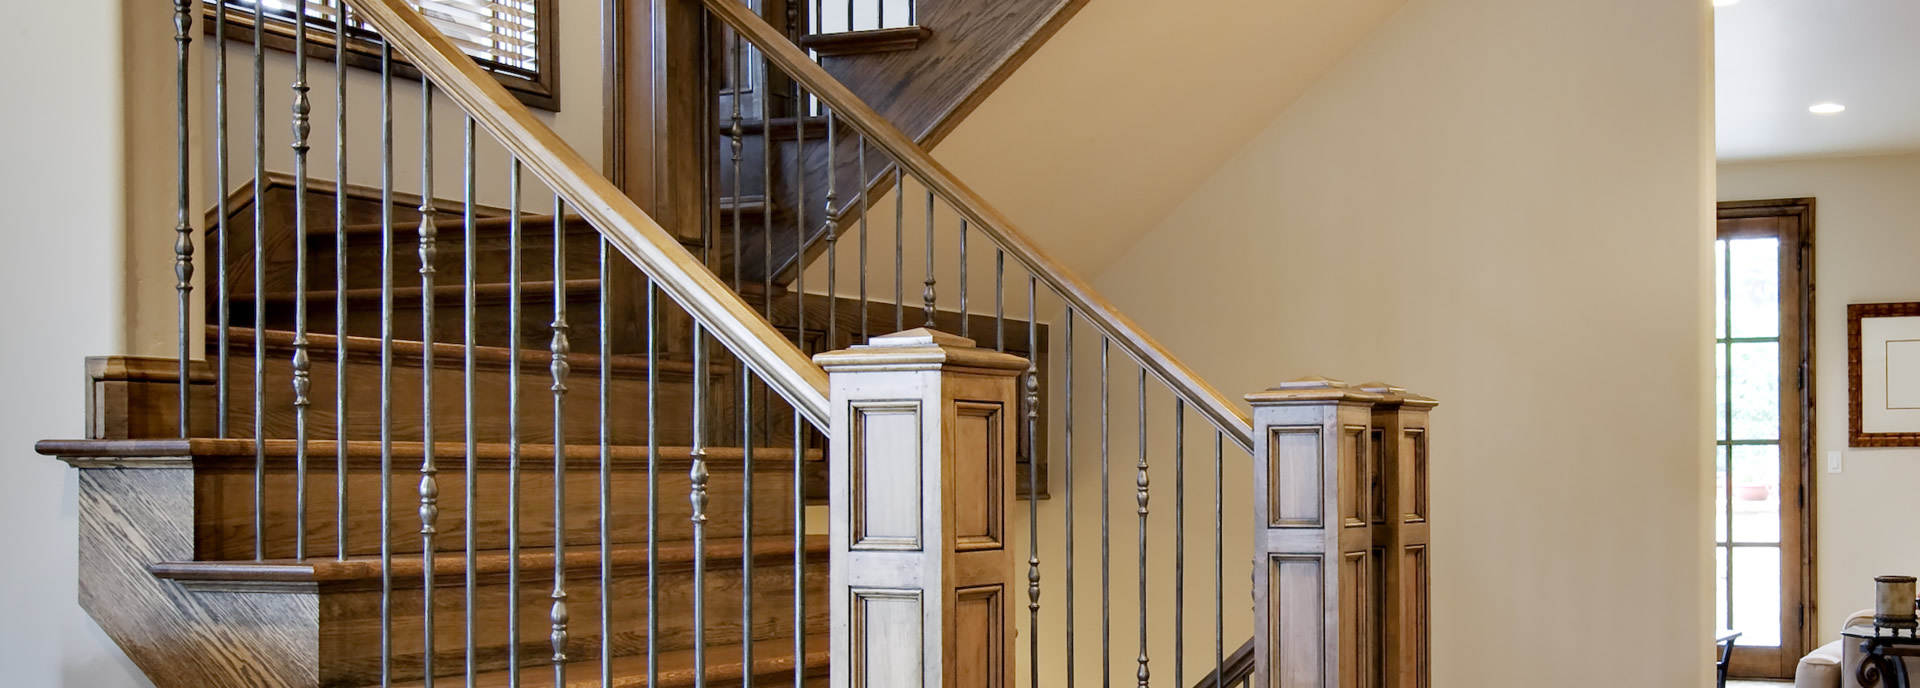 Eye on Design: Building a Winding Staircase Alpharetta, GA